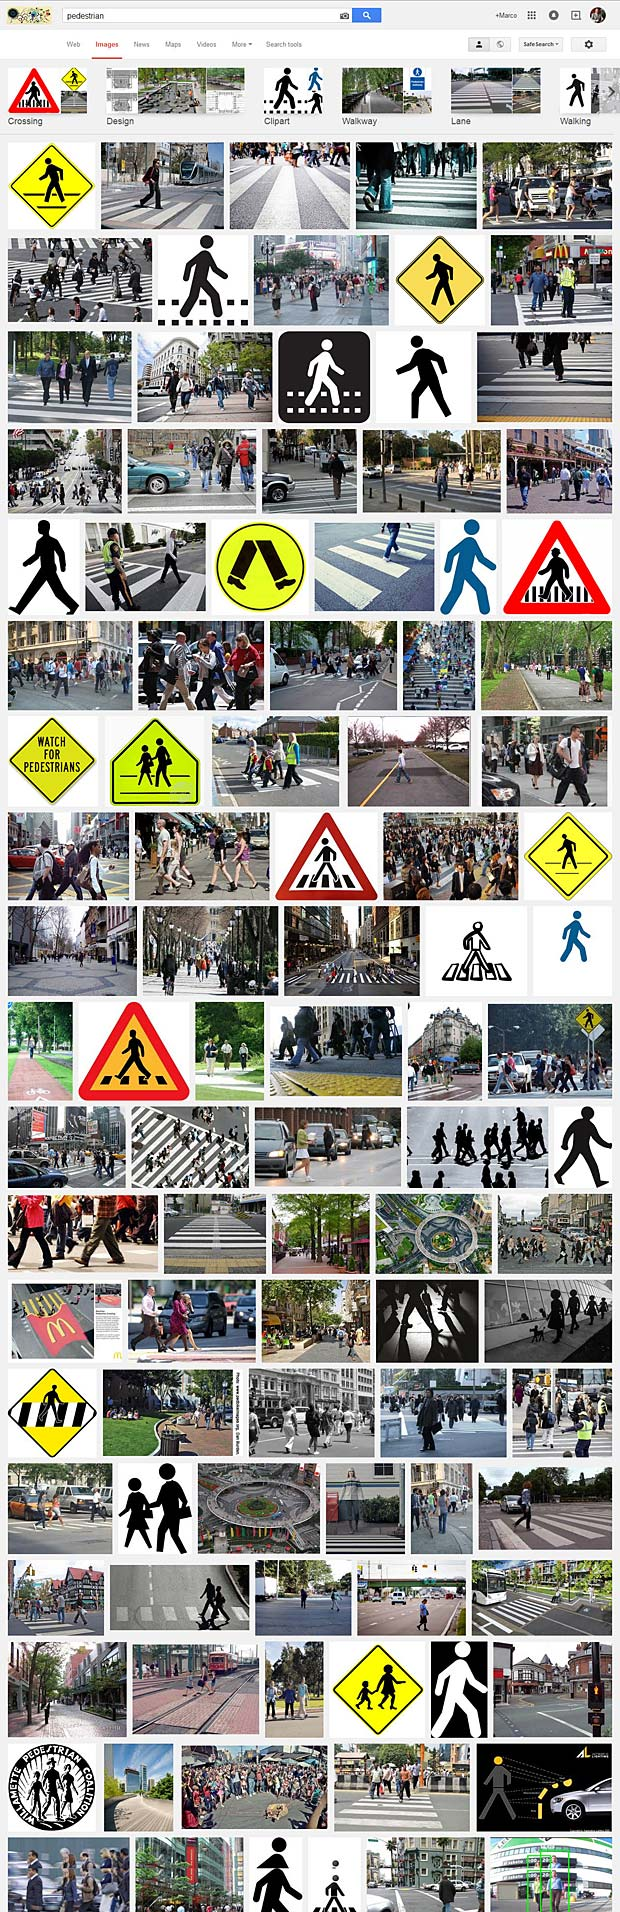 Goggle Image Search for pedestrian